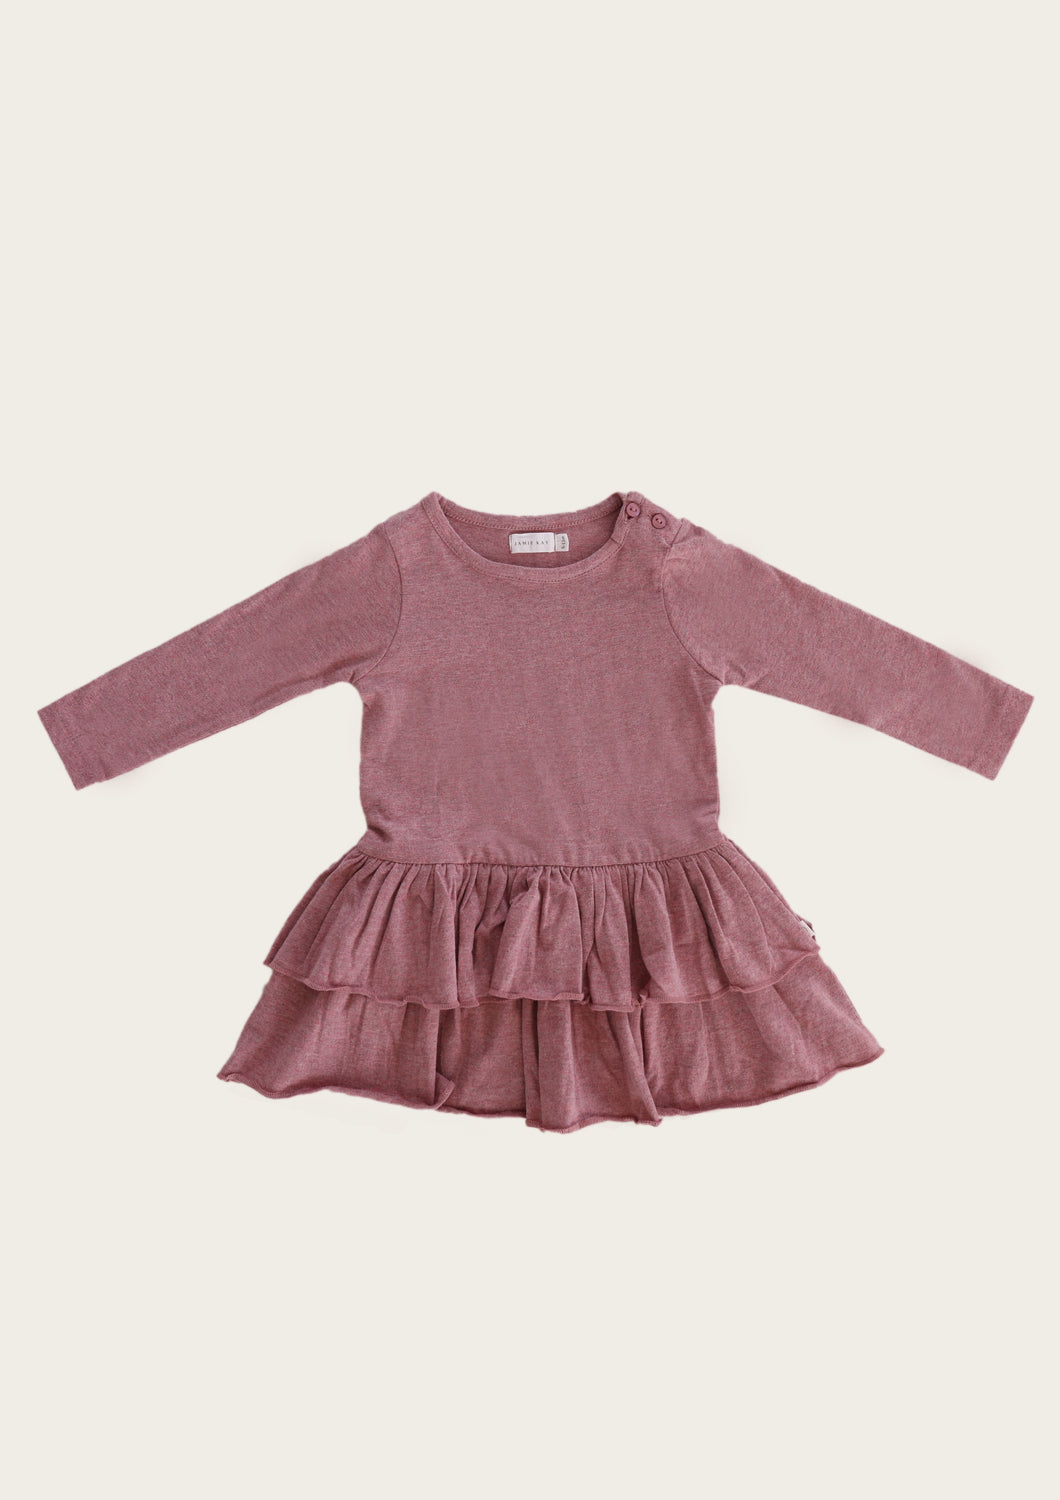 jamie kay echo dress in berry fizz